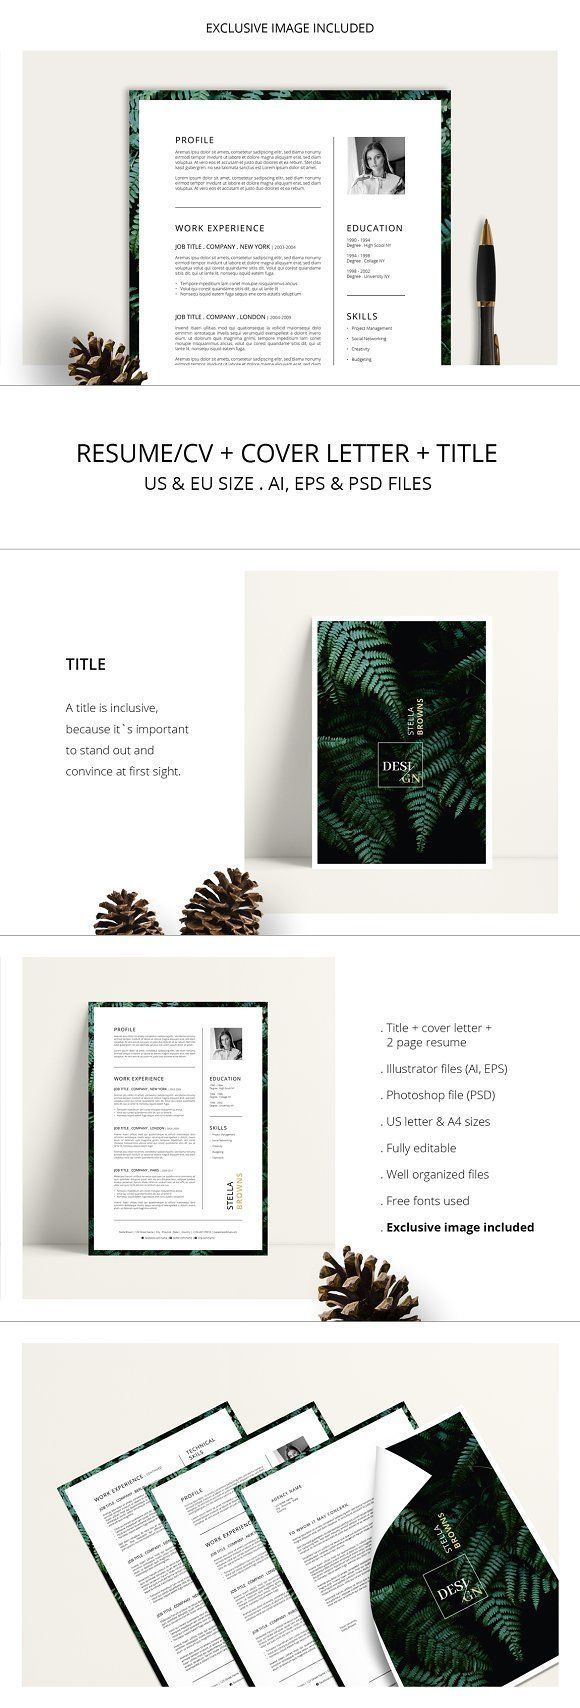 FERNS Resume/CV + Cover Letter by AgataCreate on @creativemarket #resume #cv #template #design #examples #student #skills #layout #creative #cover #letter #professional